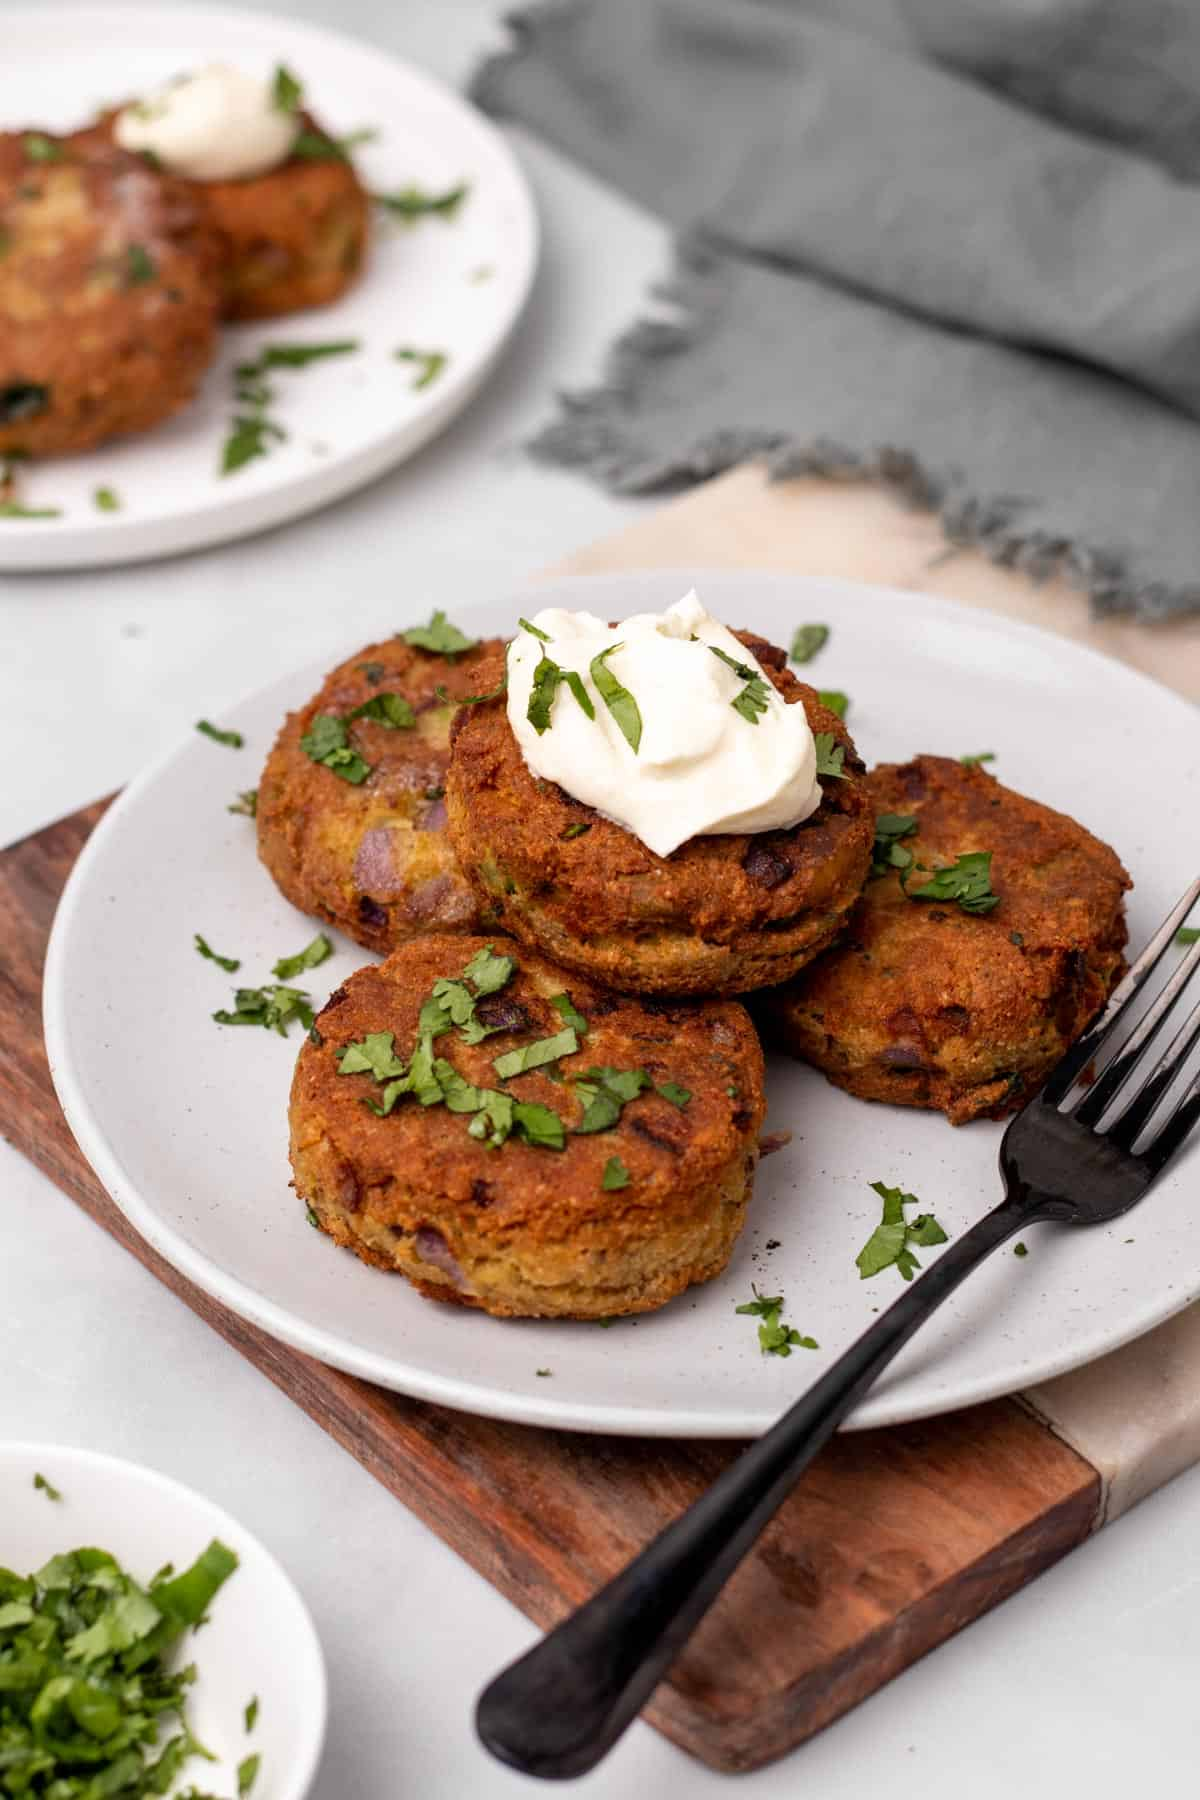 Four salmon patties on a white plate garnished with parsley and sour cream